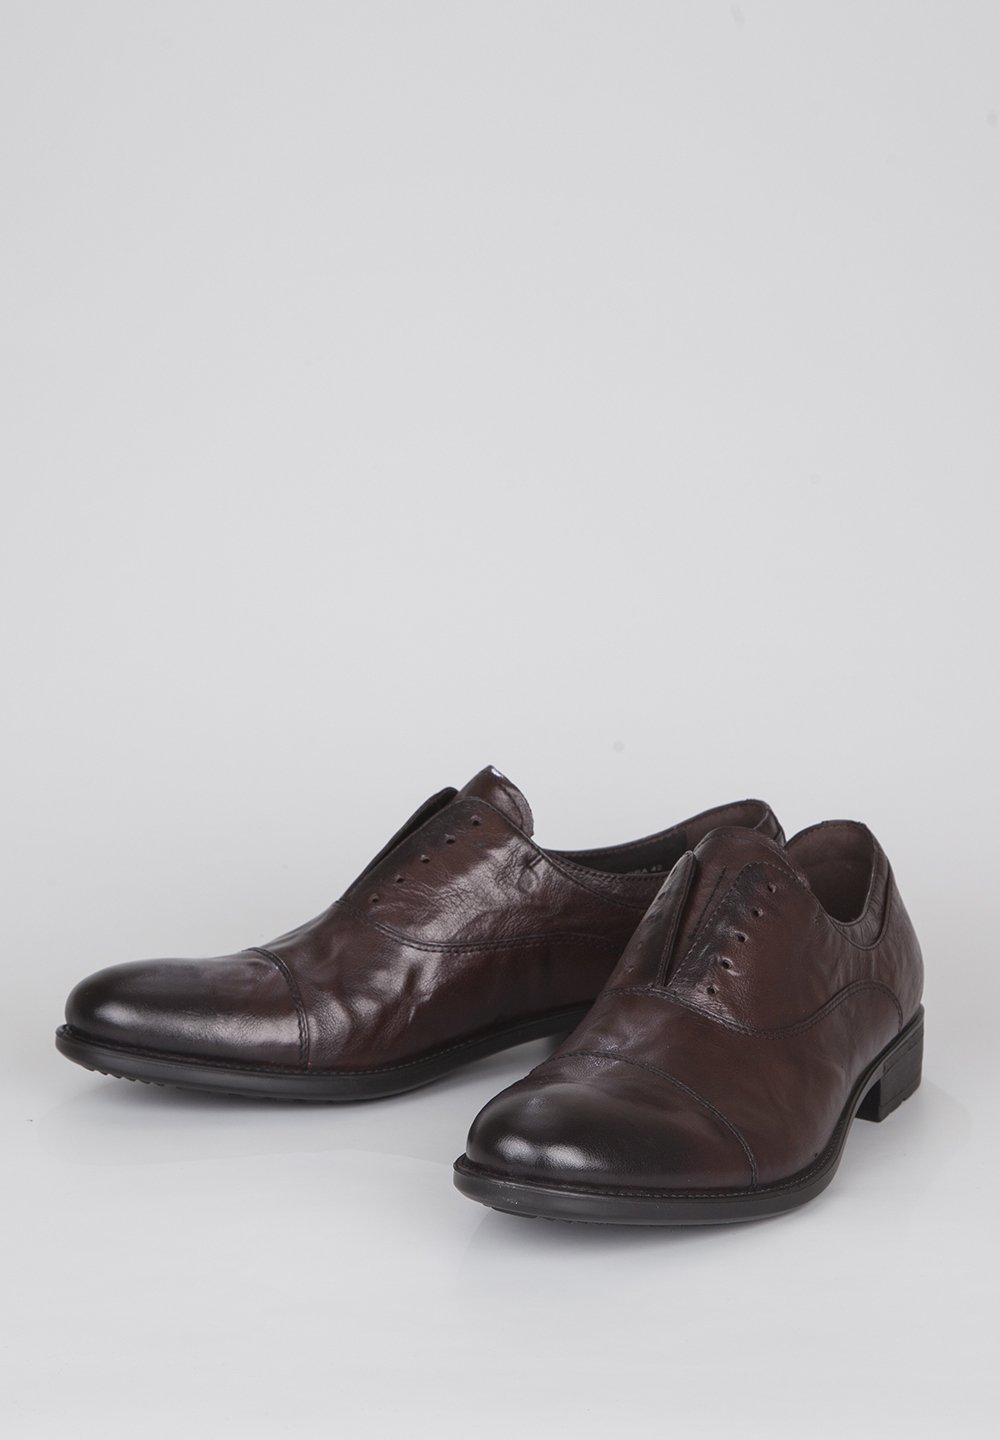 Tj Collection Distressed Oxfords - Mocassins Dark Brown